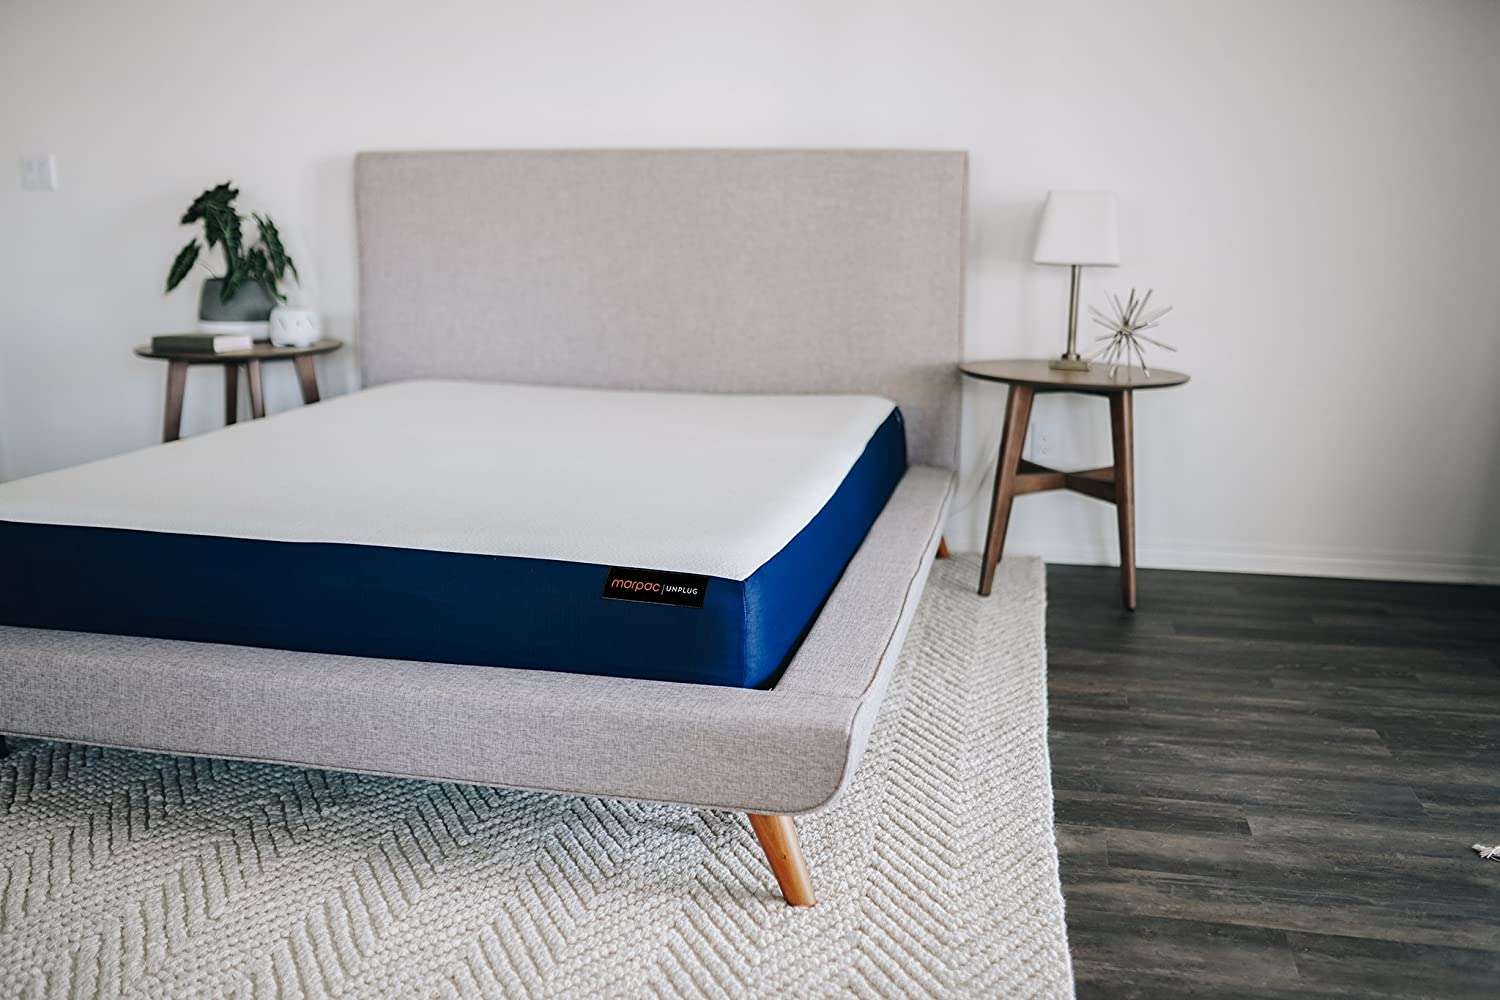 Amazon.com: Unplug Cal King Mattress 8 inch 2-Layer Gel Memory Foam System, Bed in a Box, Thermocool Knit-Stretch Cover, 101 Night Trial, 10 - Year Warranty ...